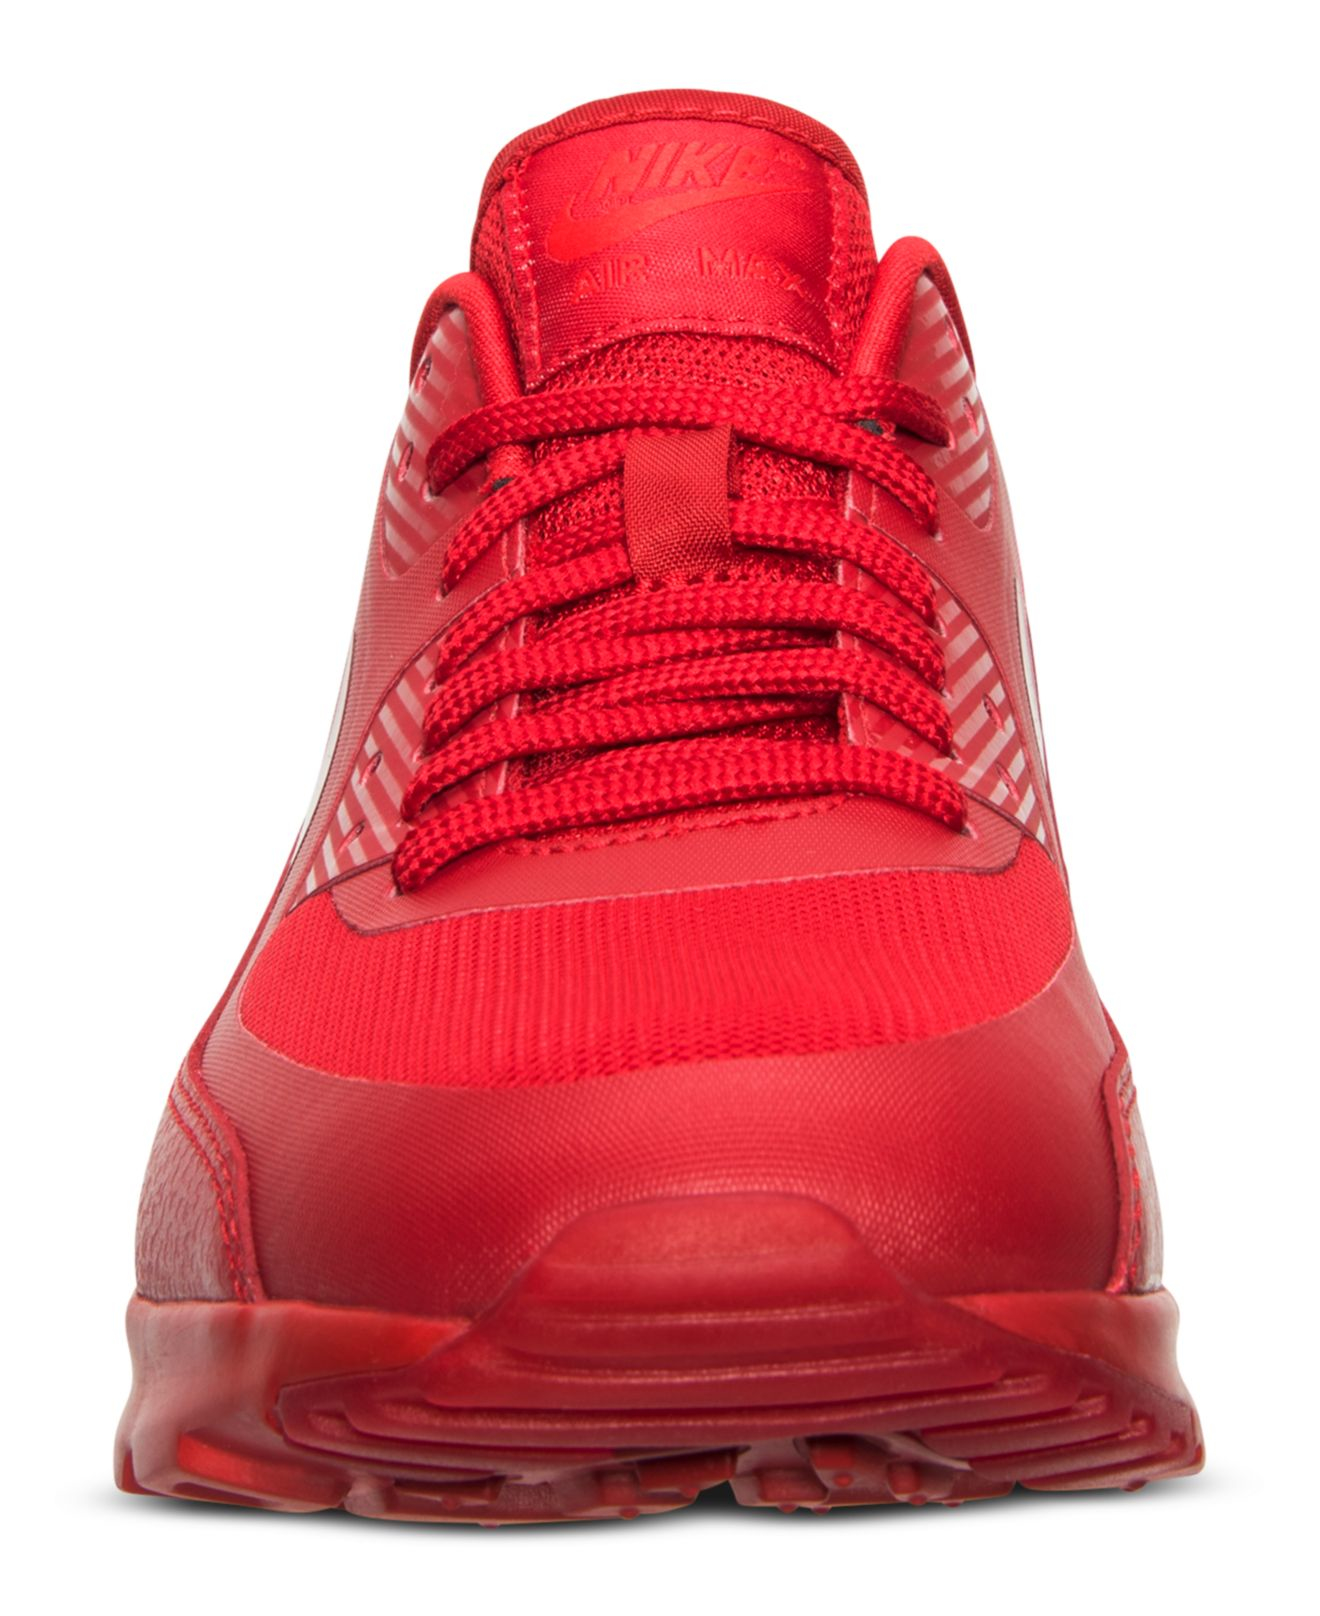 hot sale online 1e75d b47cb good nike air max 95 essential university red wolf 020a5 06eaf  greece lyst  nike womens air max 90 ultra essentials running sneakers 92904 56cde